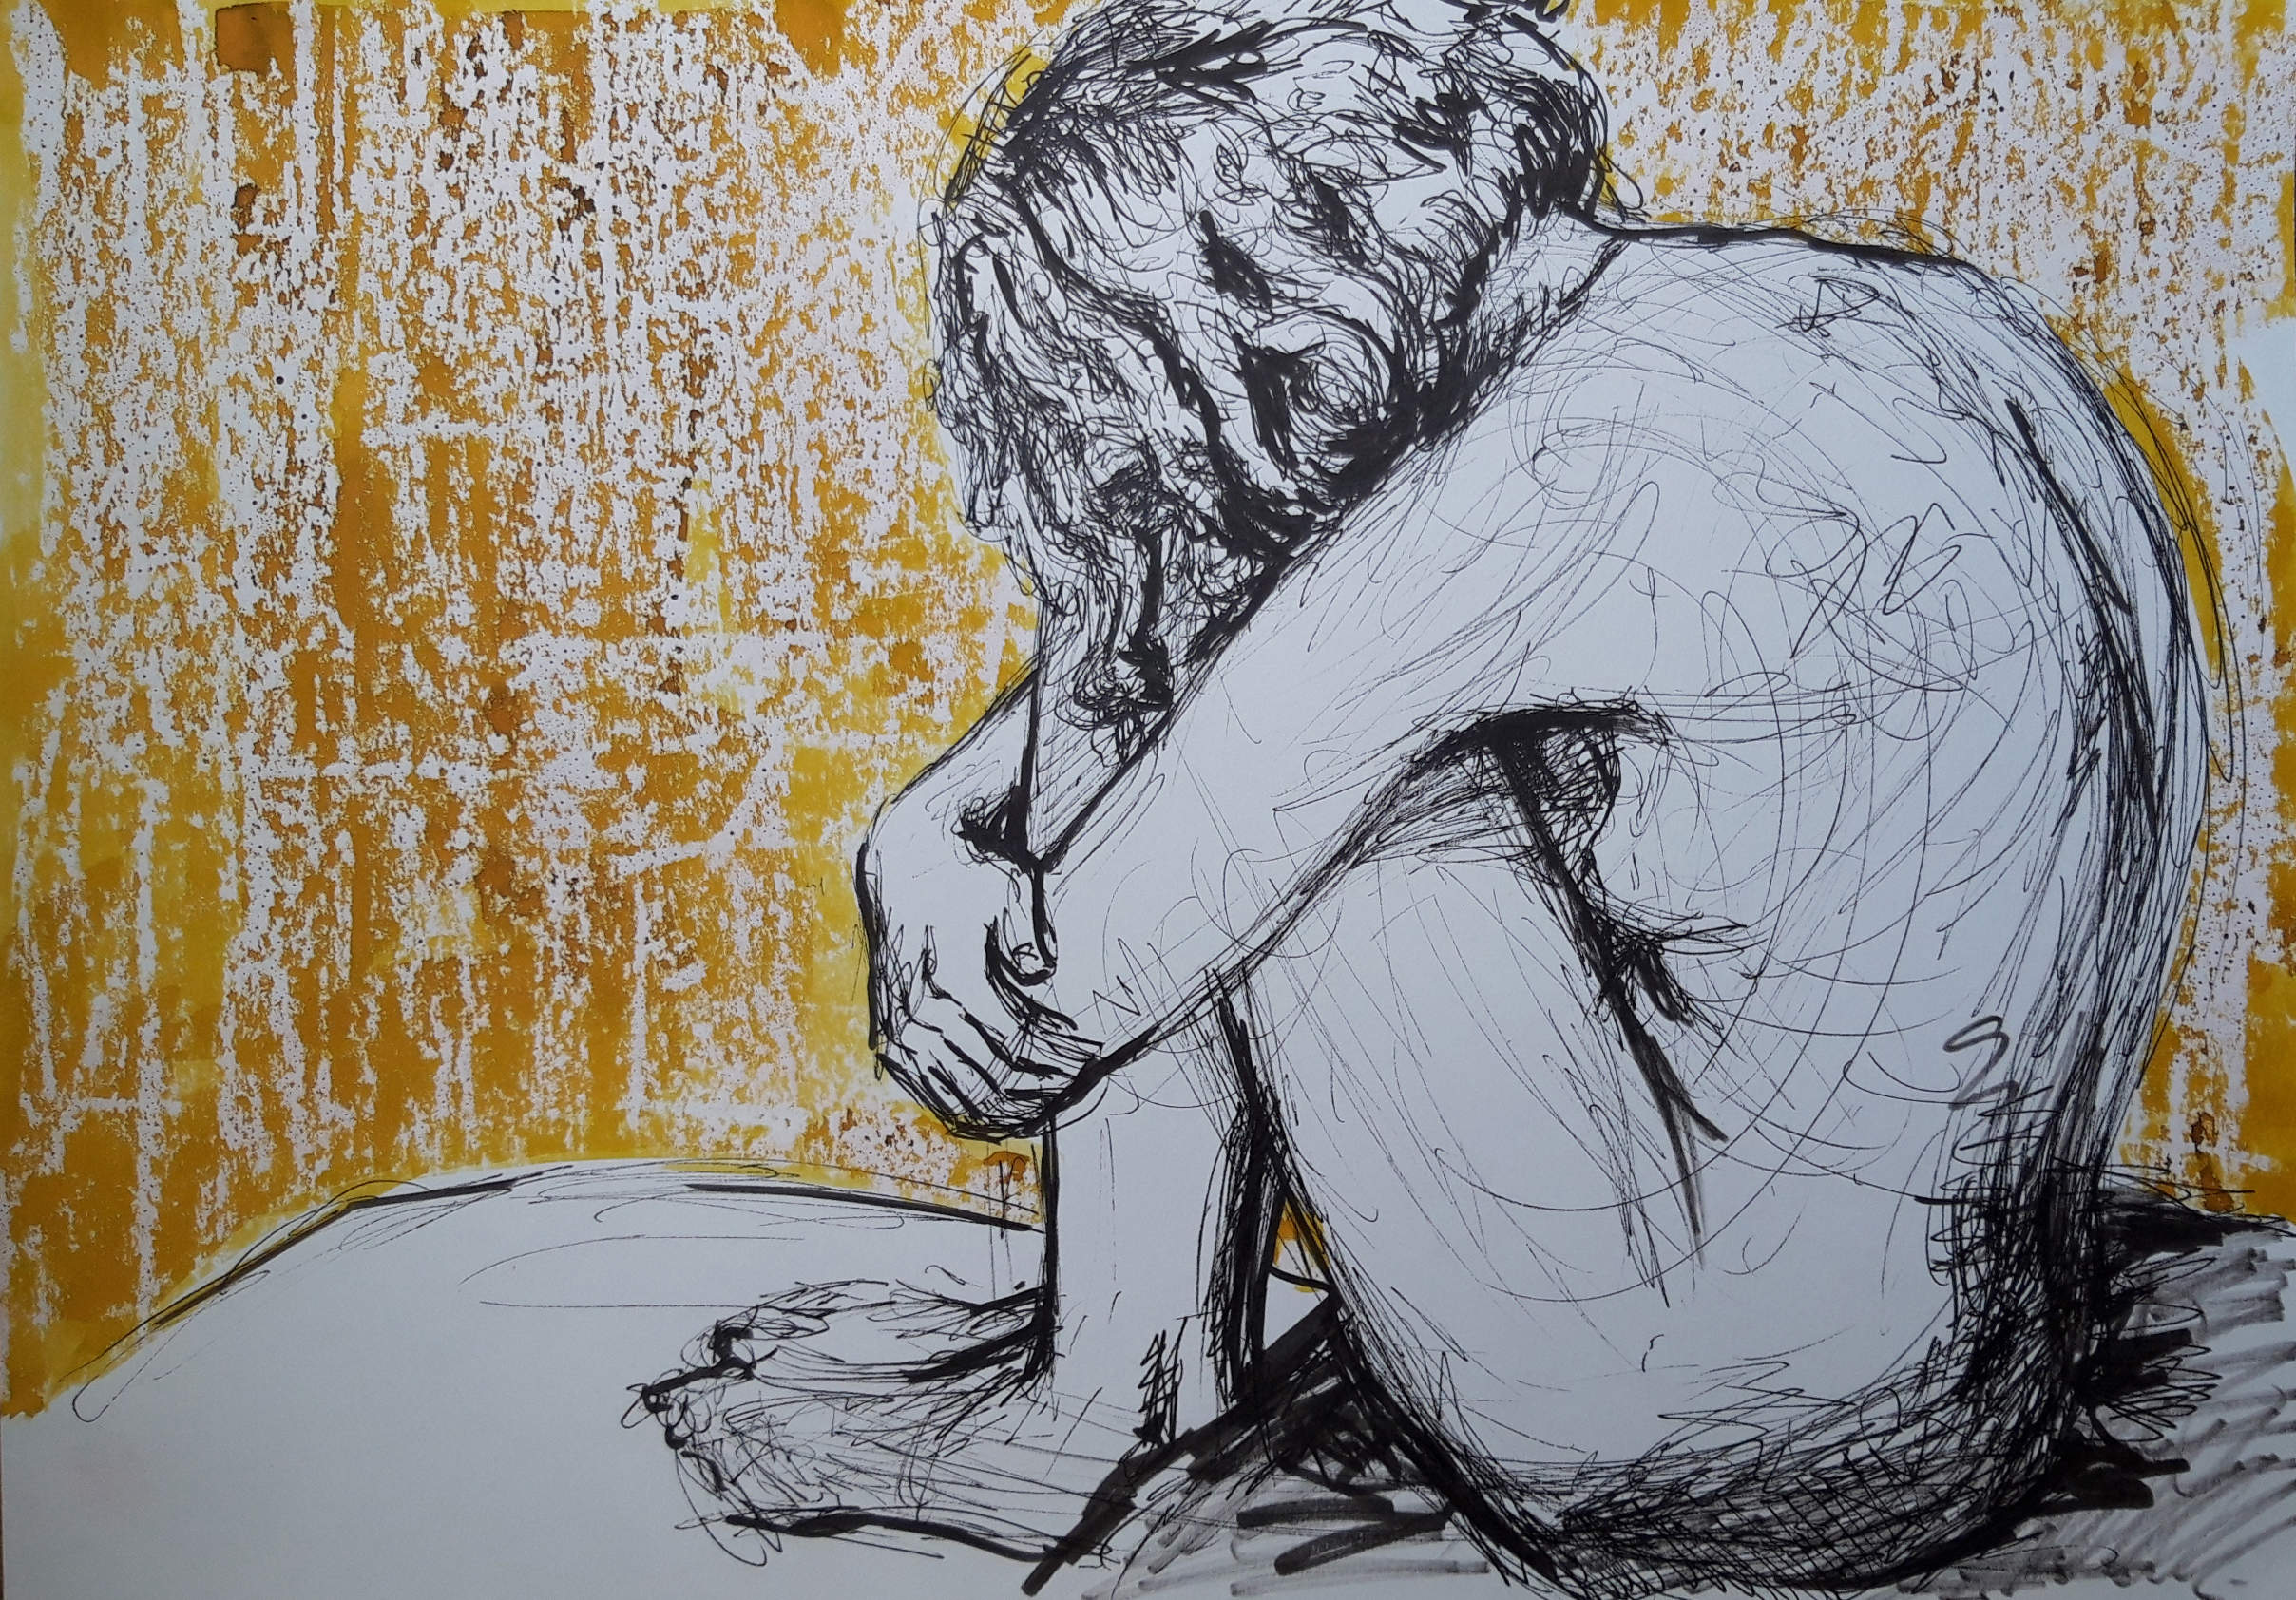 Life Drawing - Islington Arts Factory